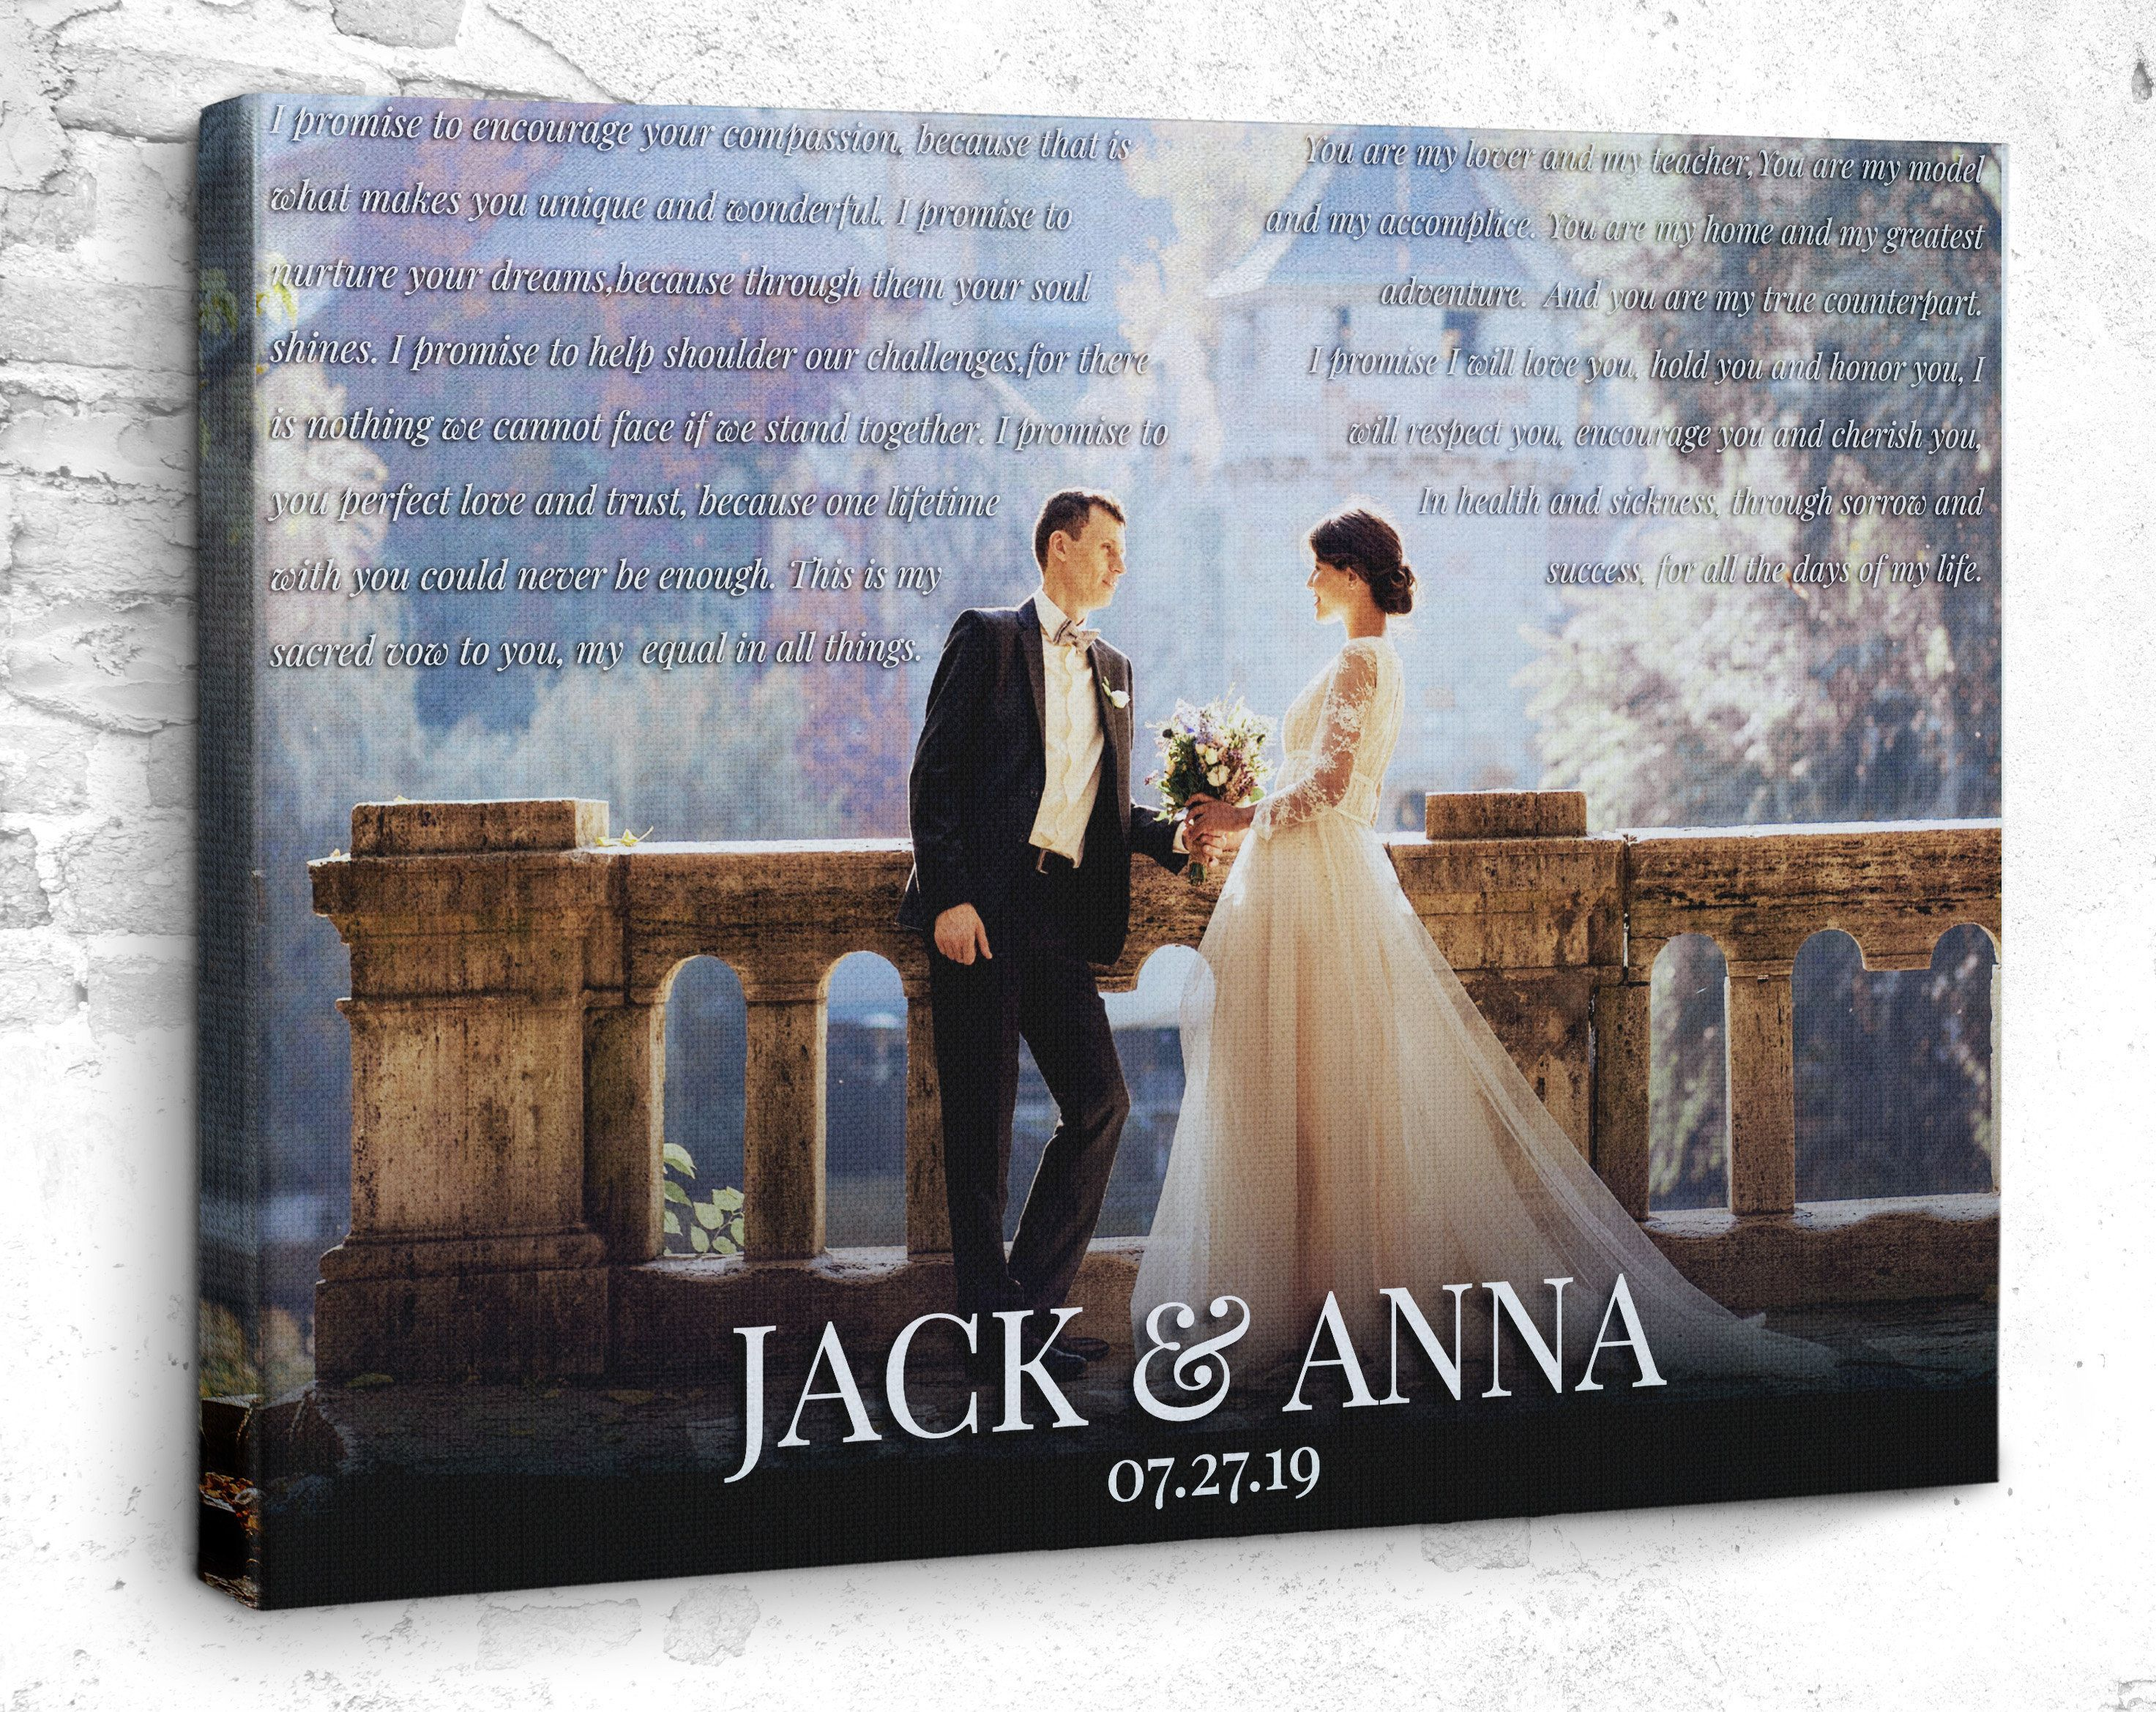 Canvas Prints Photo To Canvas Wedding Gift Wedding Pictures Home Decor Wall Decor Canvas Wall Art Photogr In 2020 Wedding Saving Wedding Pictures Wedding Canvas